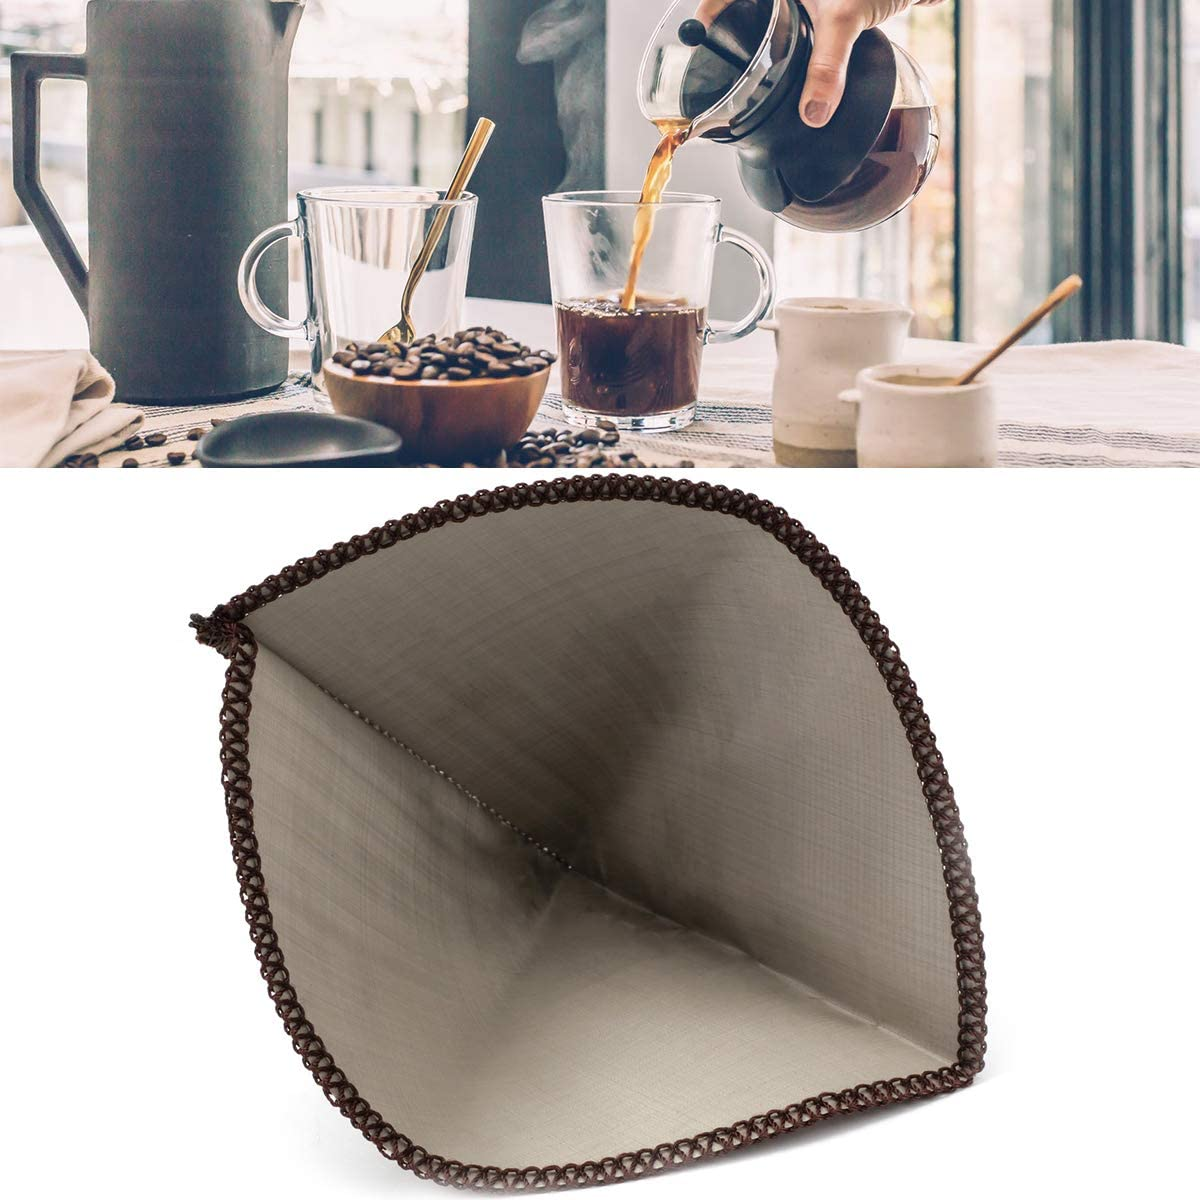 Reusable Pour Seasonal Wrap Introduction Over Coffee In a popularity Filter Stainless Paperless Drip Steel